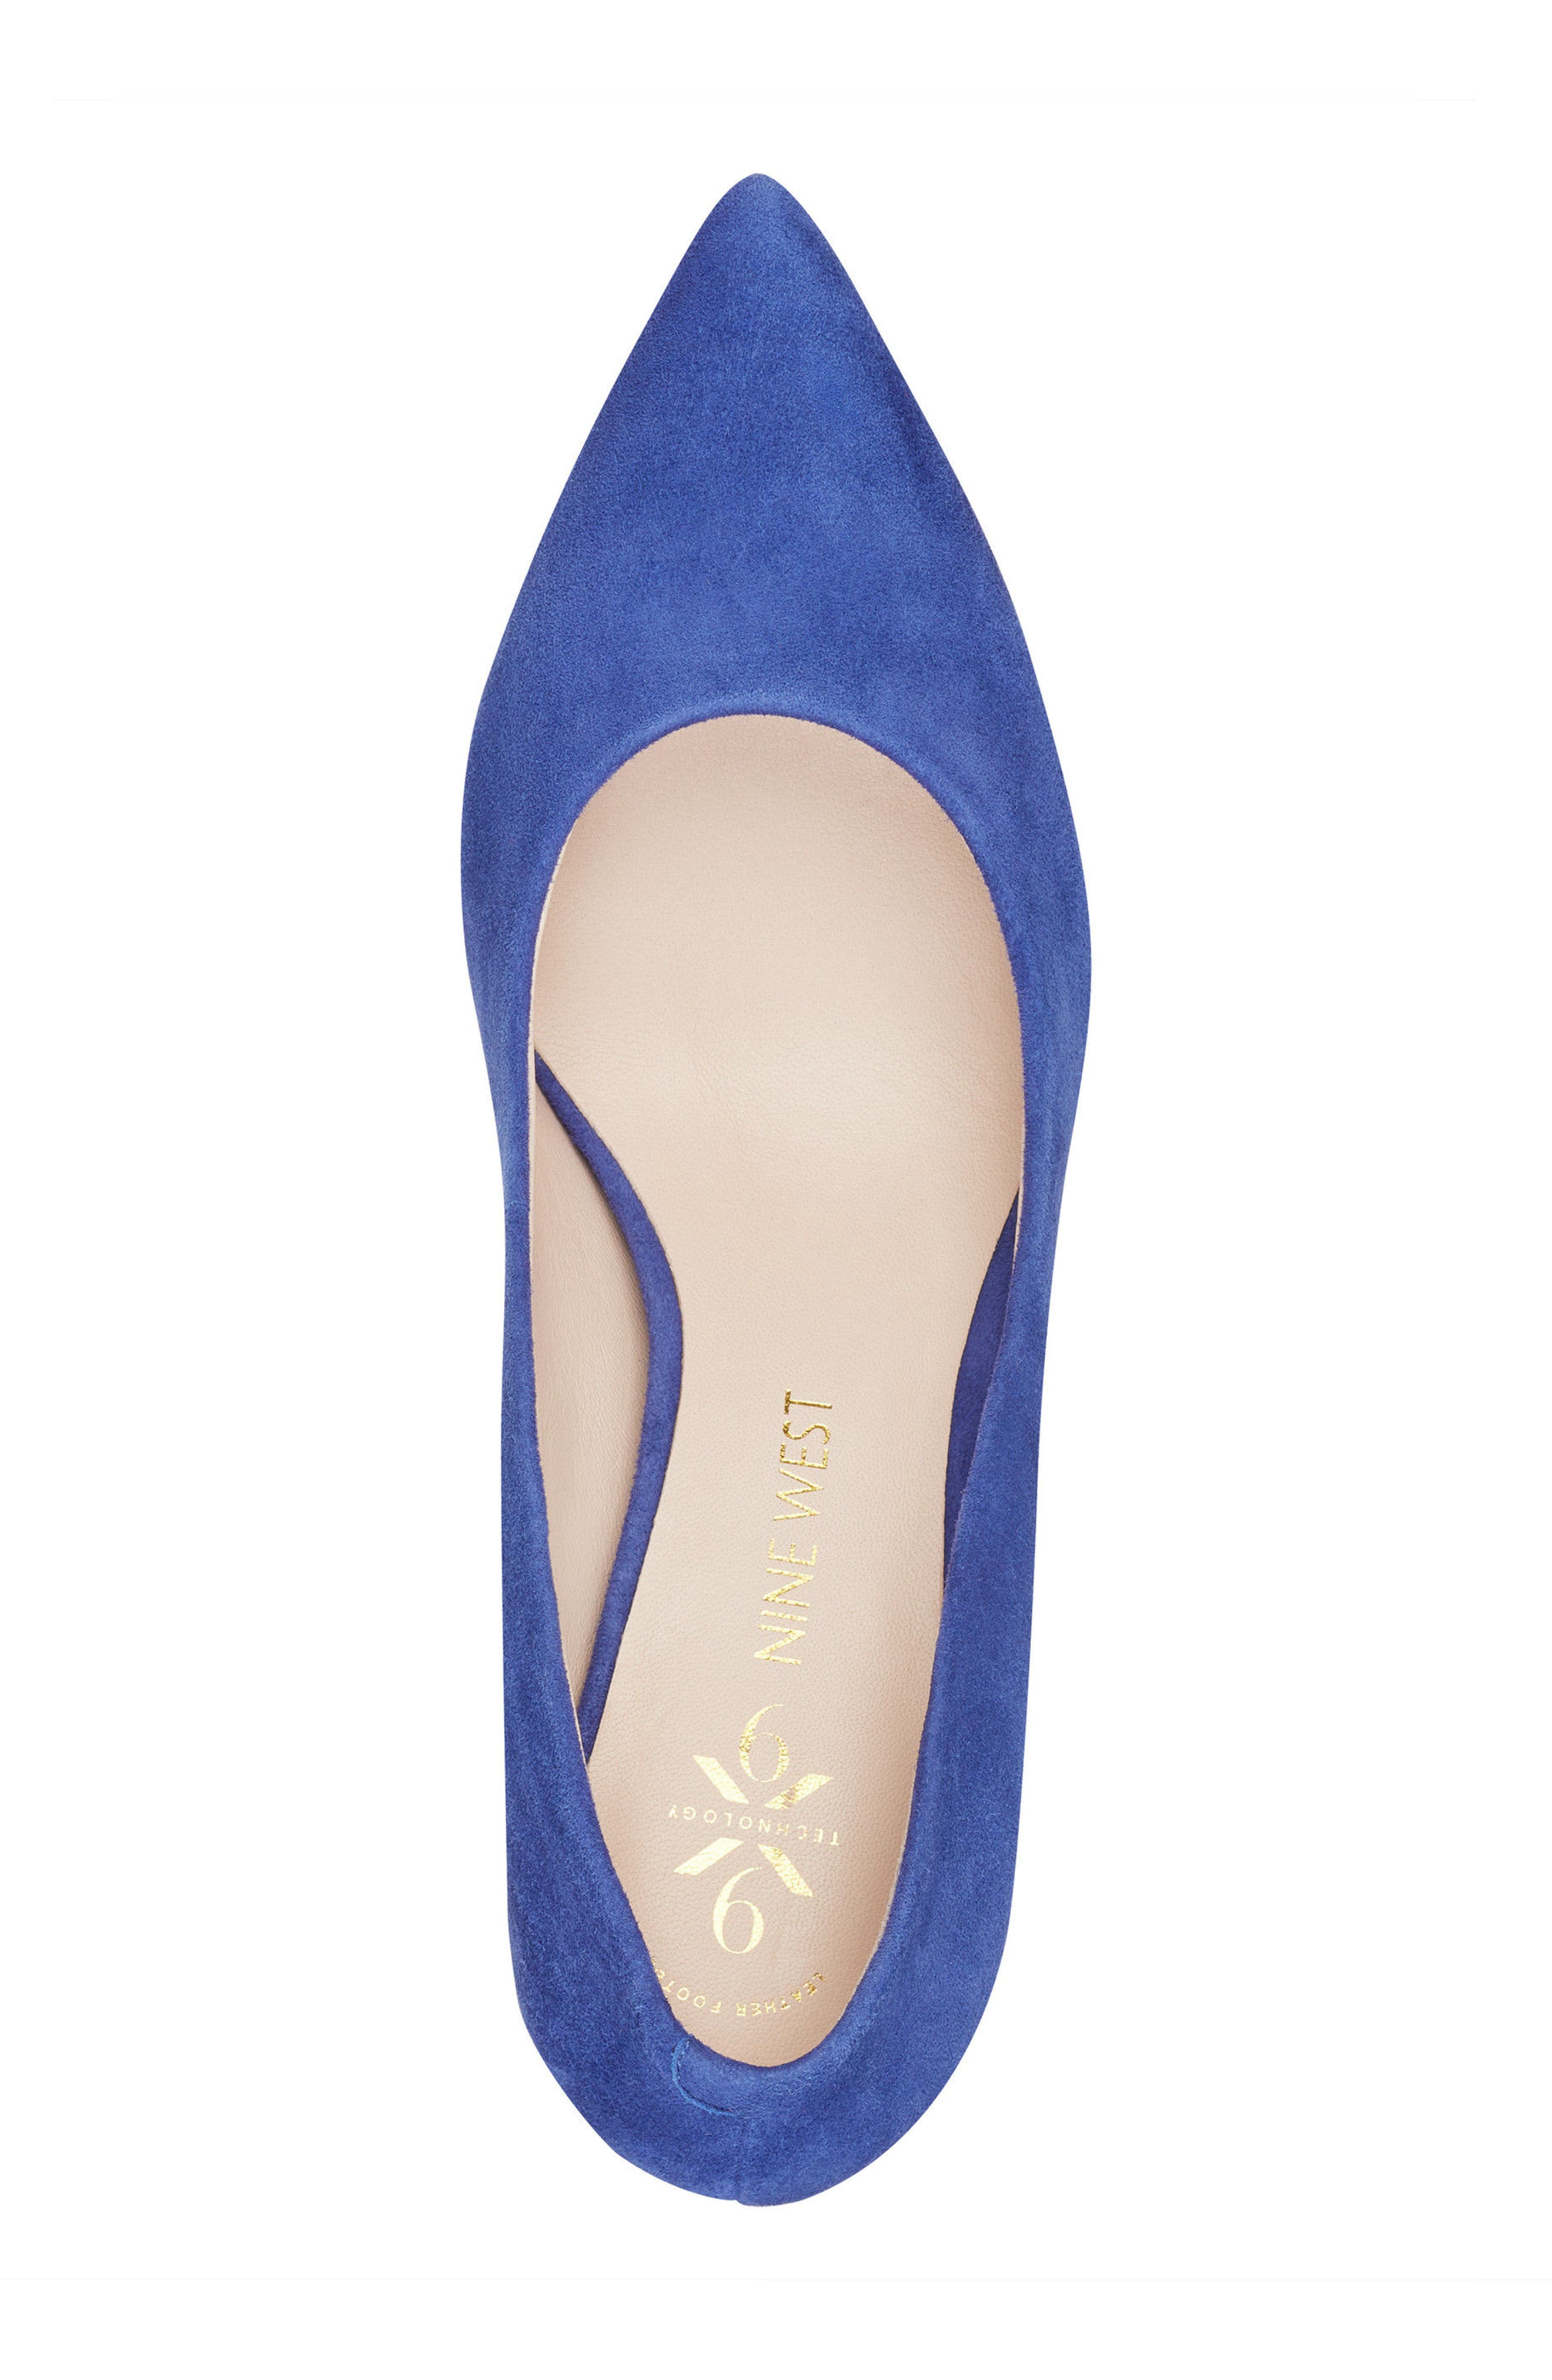 Astoria Pump,                             Alternate thumbnail 5, color,                             DARK BLUE SUEDE